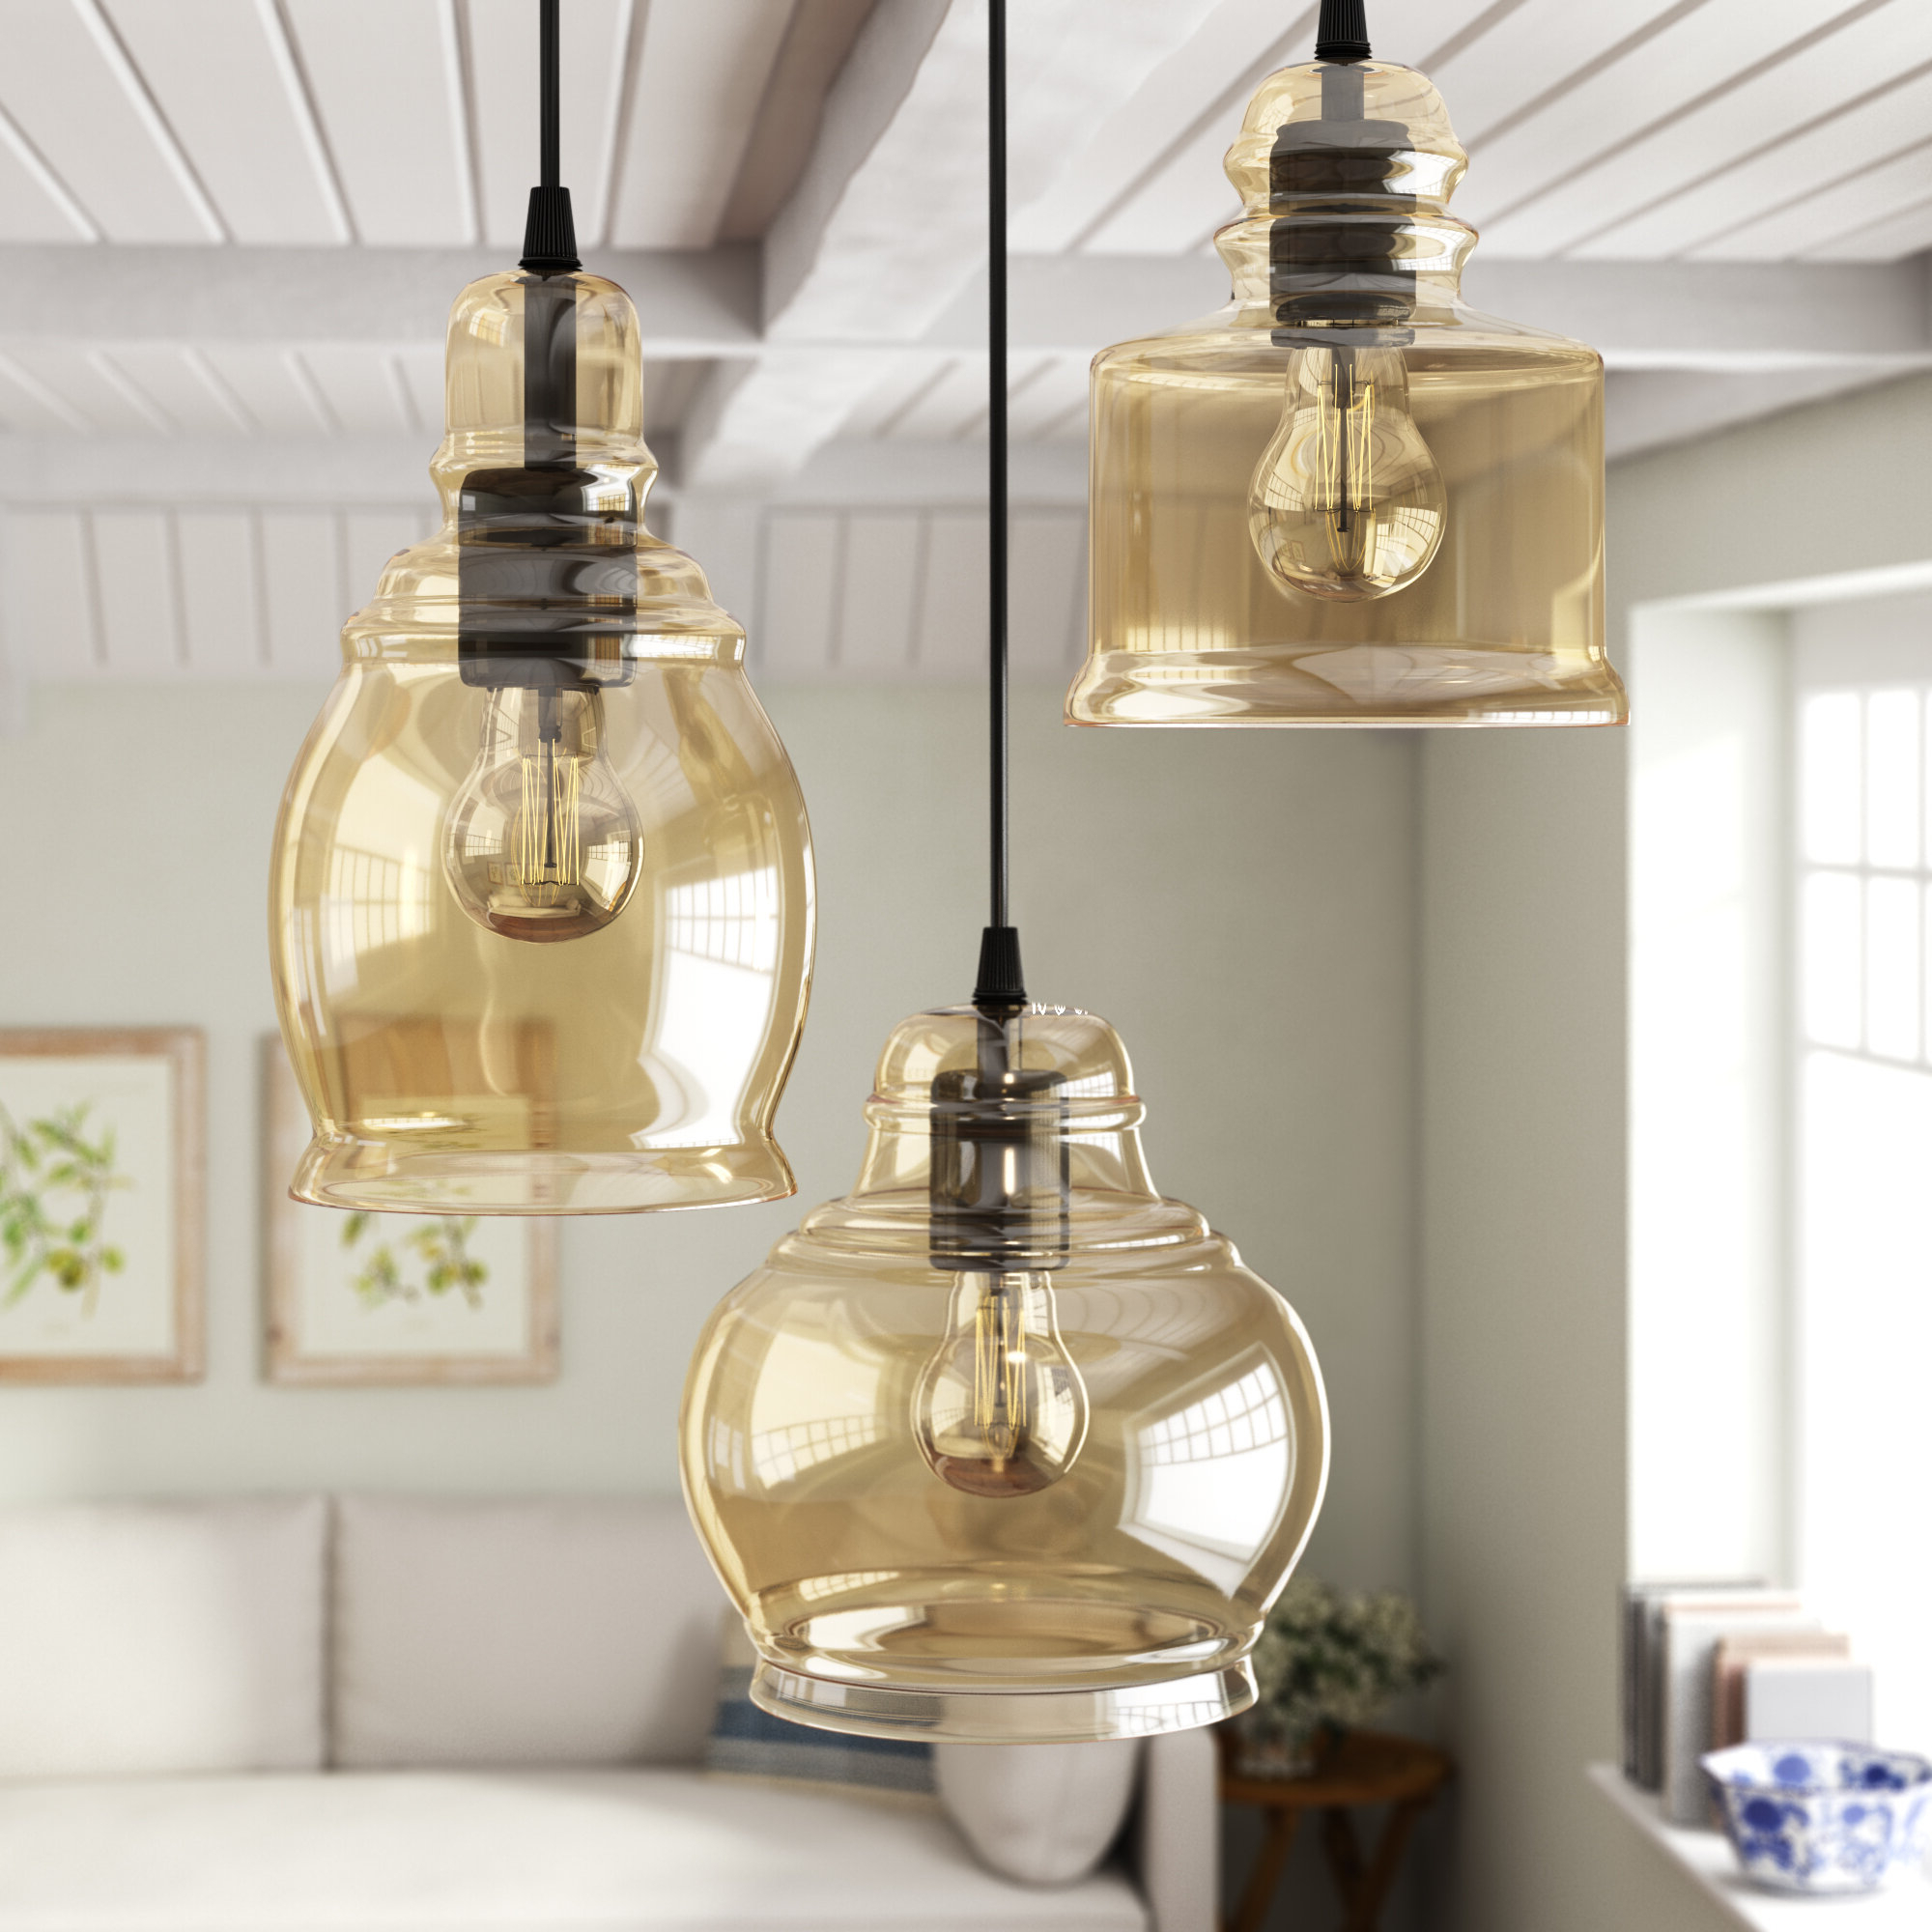 Vernice 3 Light Cluster Bell Pendant Throughout Well Known Pruett Cognac 3 Light Cluster Bell Pendants (Gallery 1 of 25)